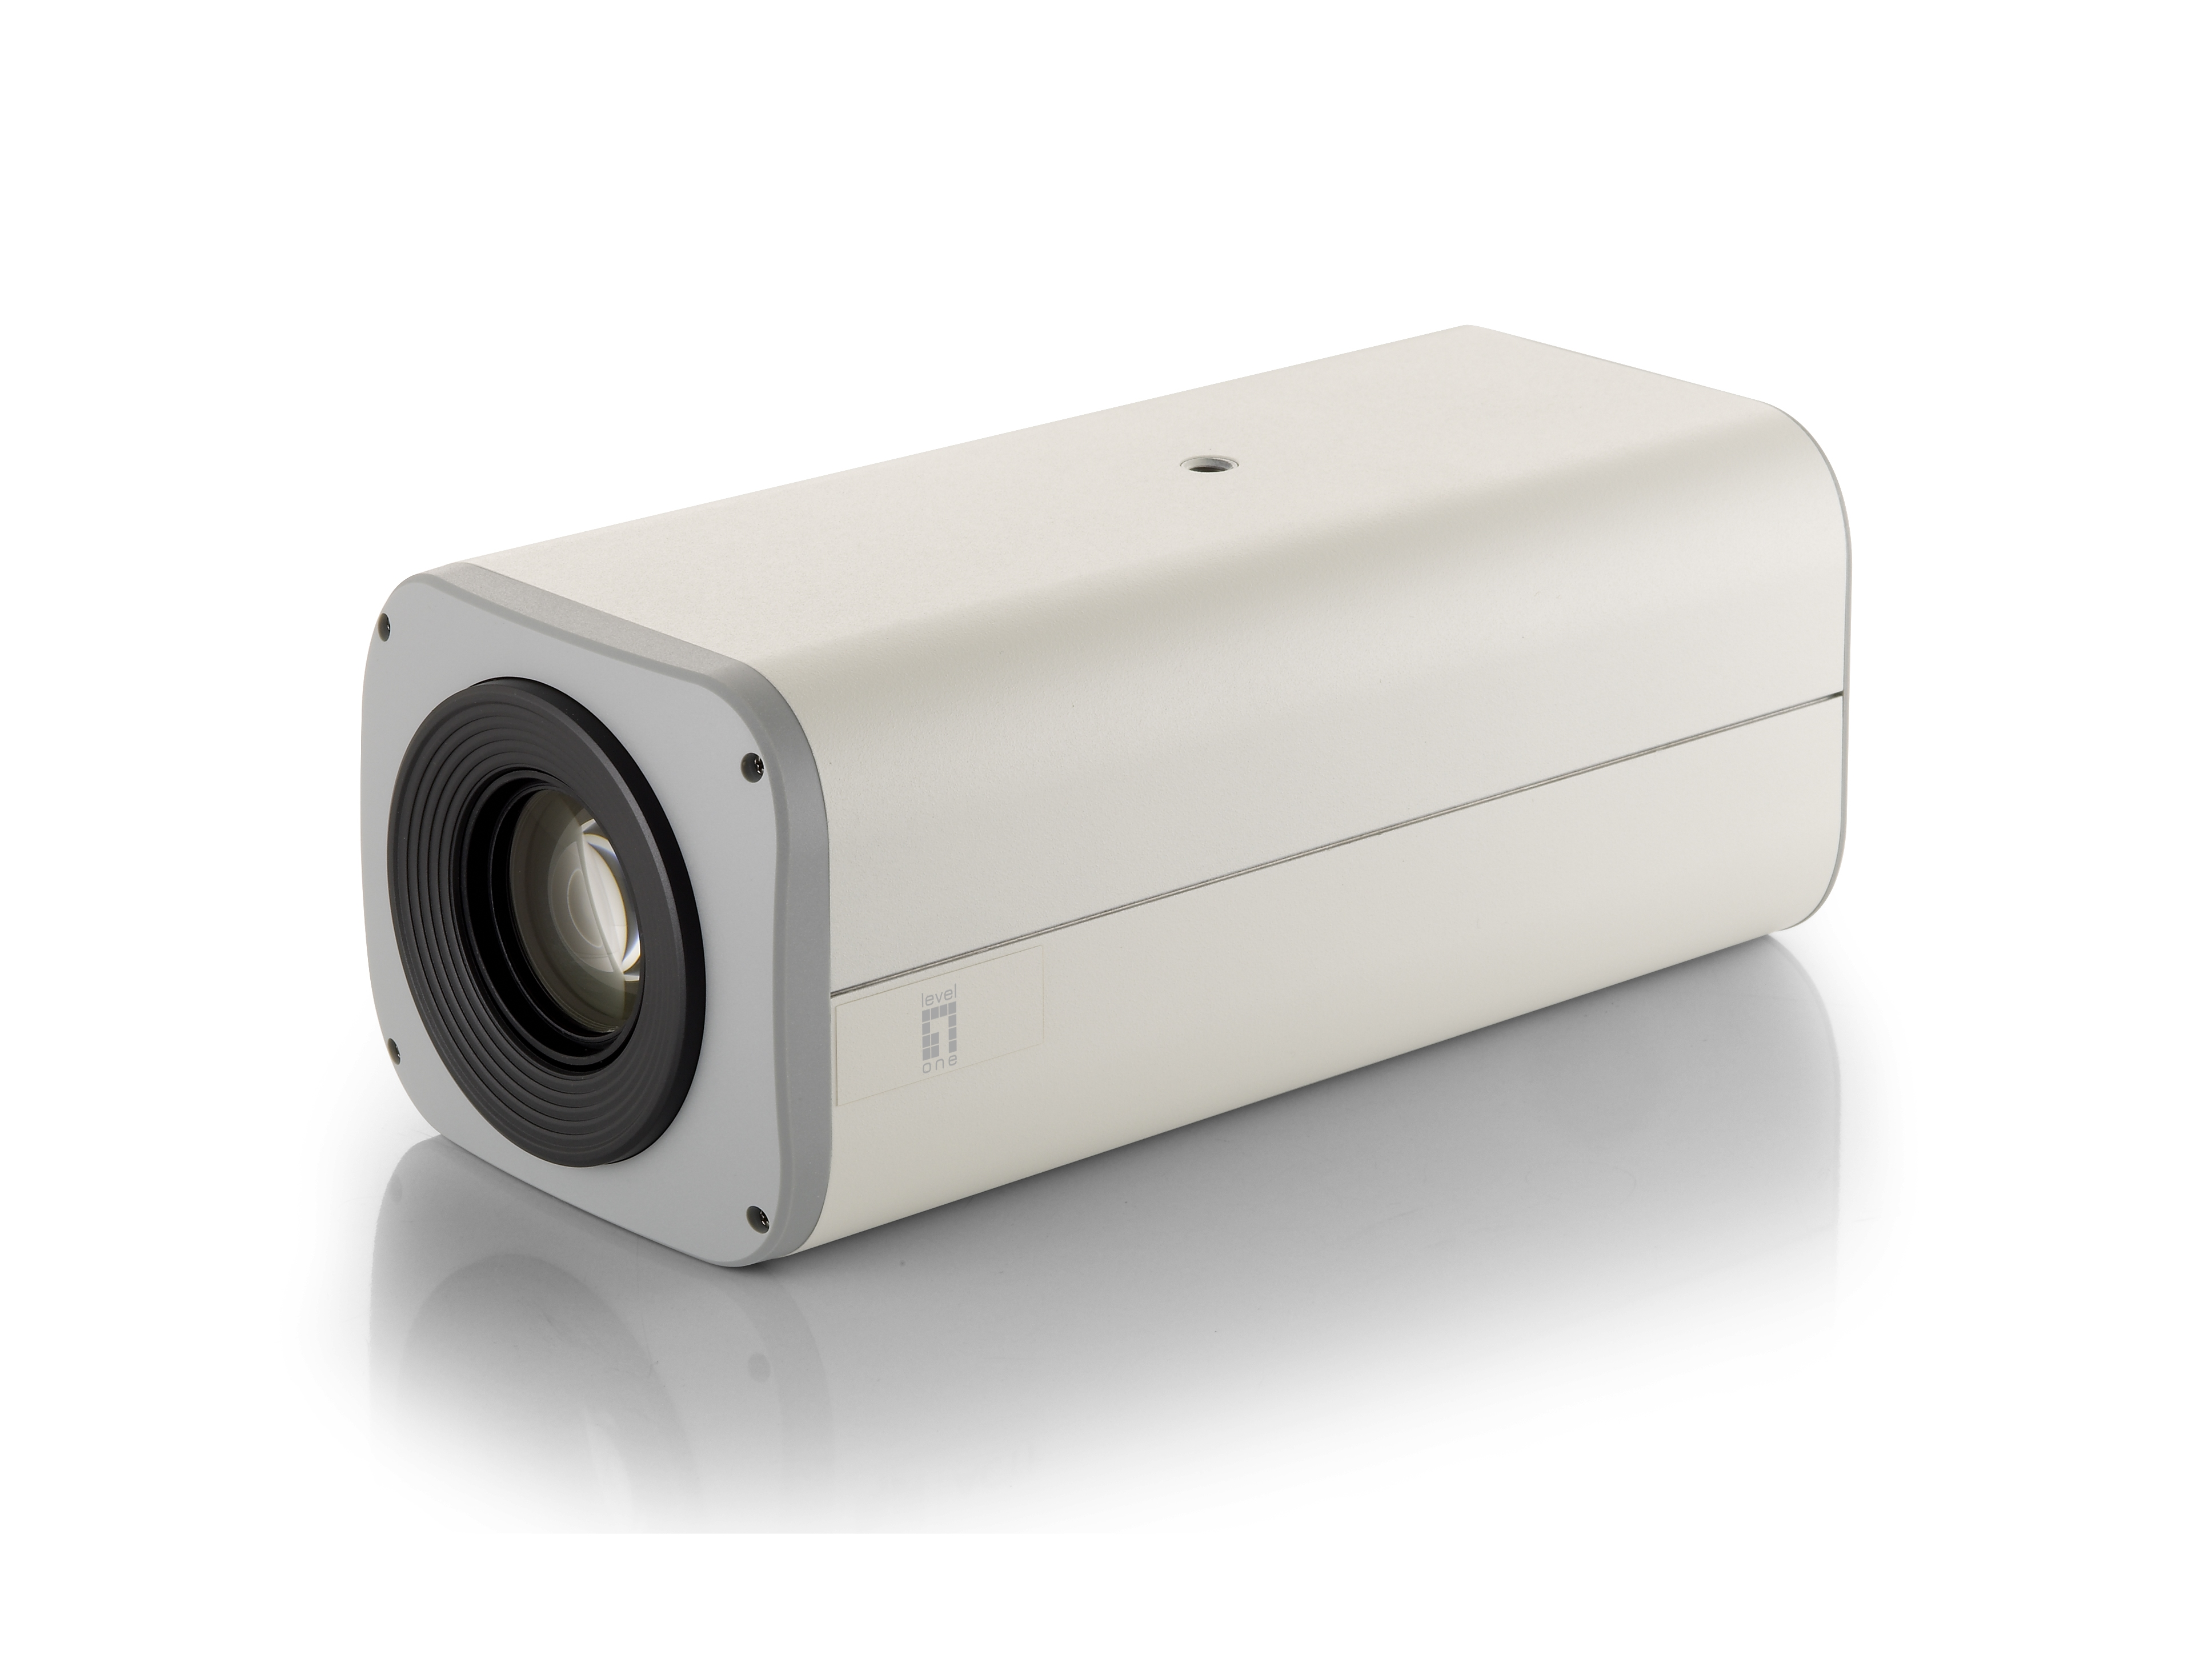 LevelOne FCS-1150 Zoom Network Camera